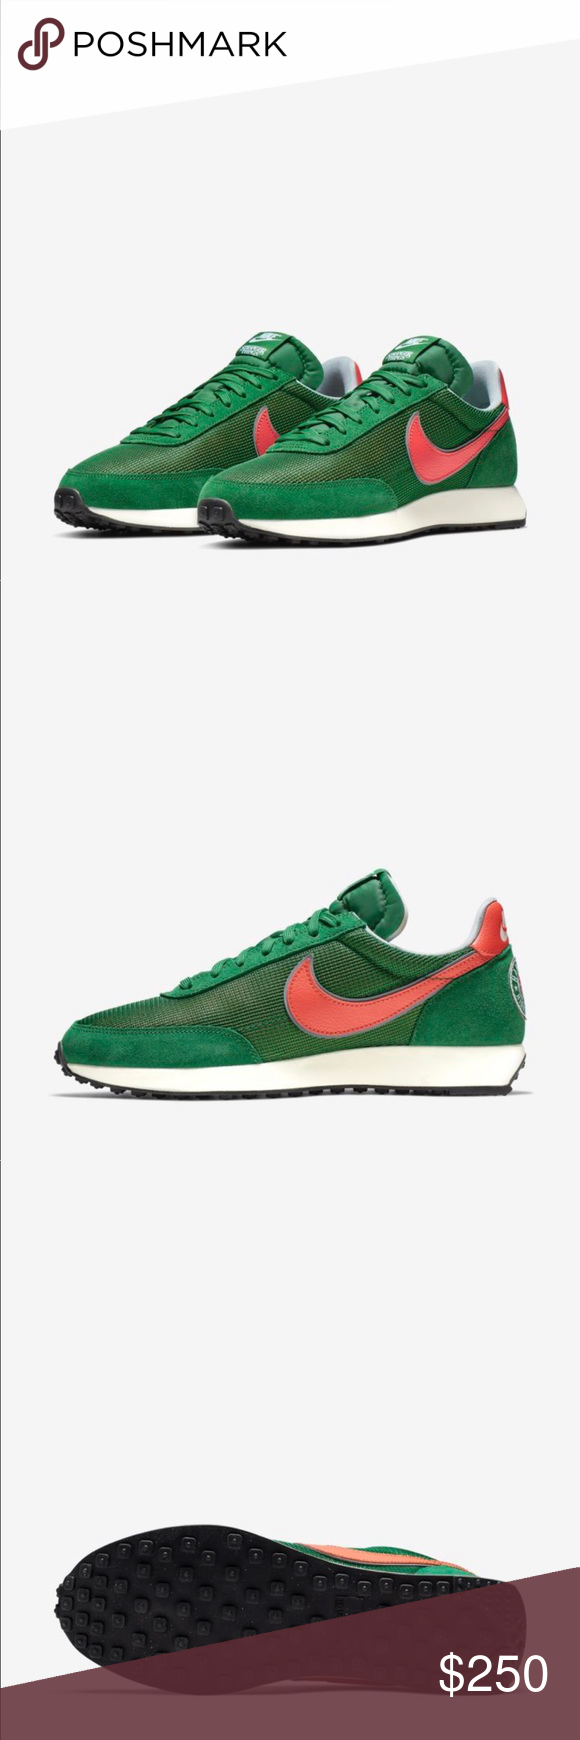 uk availability 890fb 130a6 Nike X Stranger Things AirTailwind 97 Spec.Edition Nike X ...